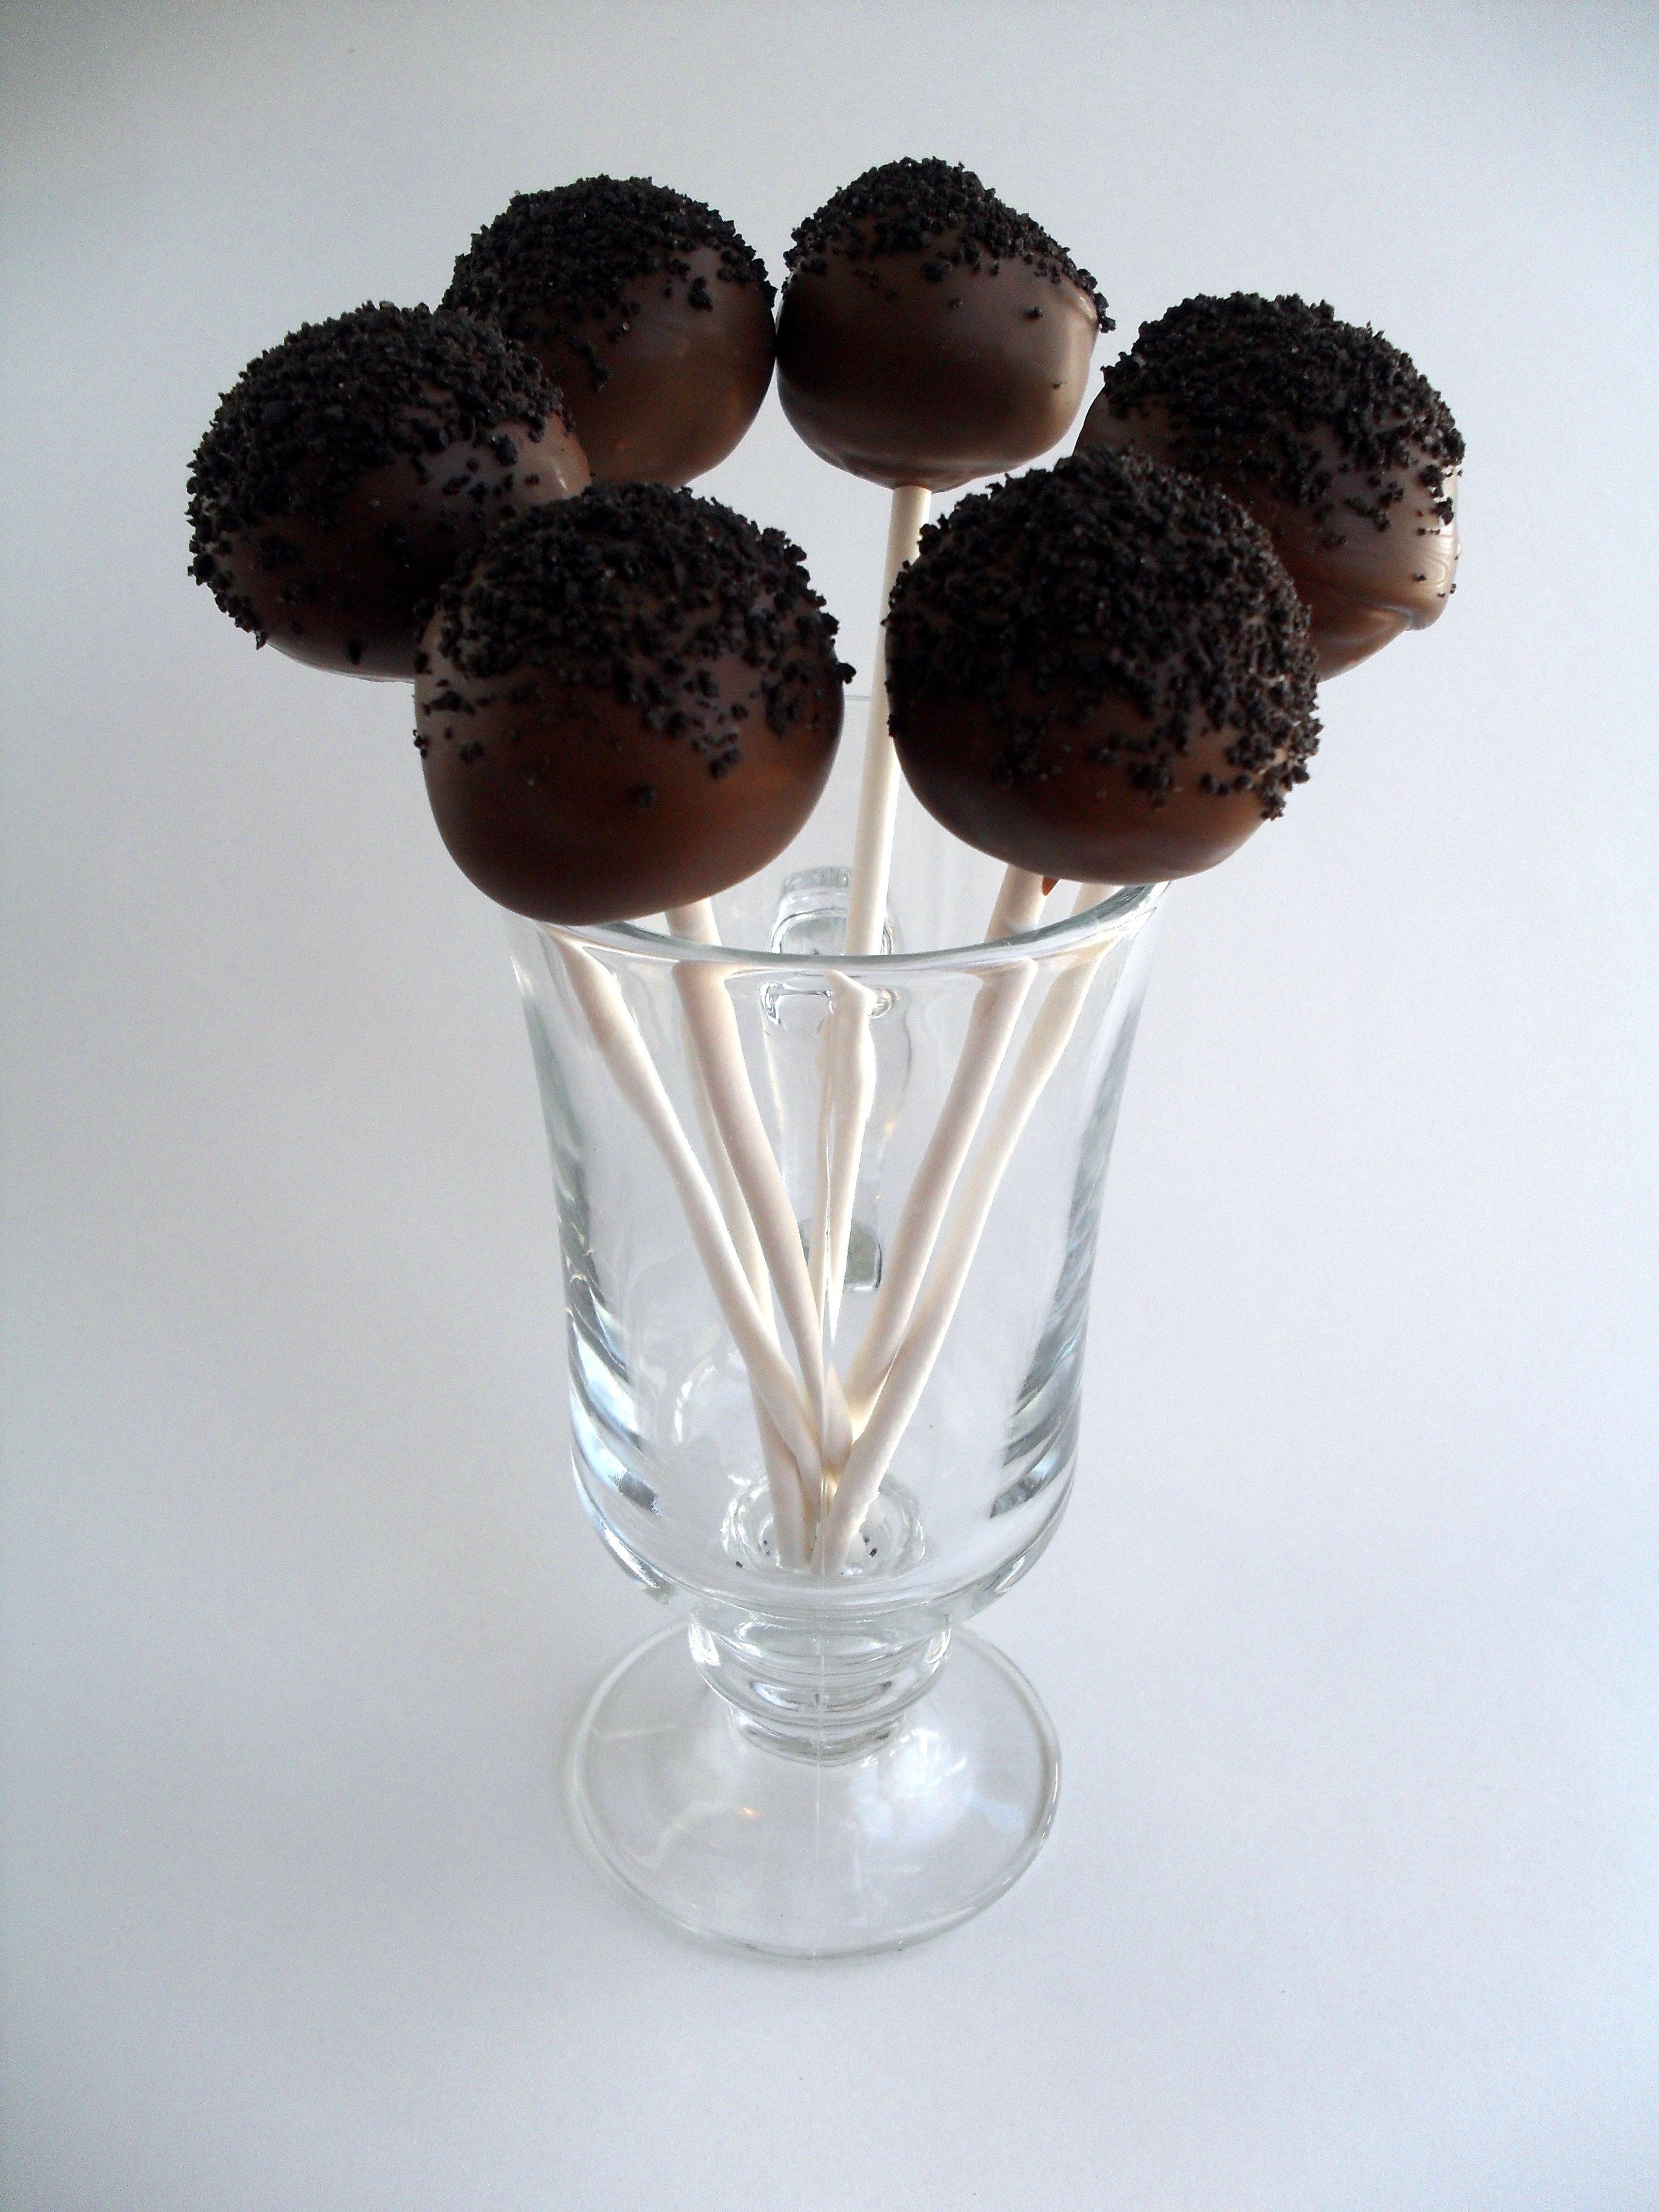 Cake Pops, Balls, & Truffles: Troubleshooting & FAQ | Veronica's ...